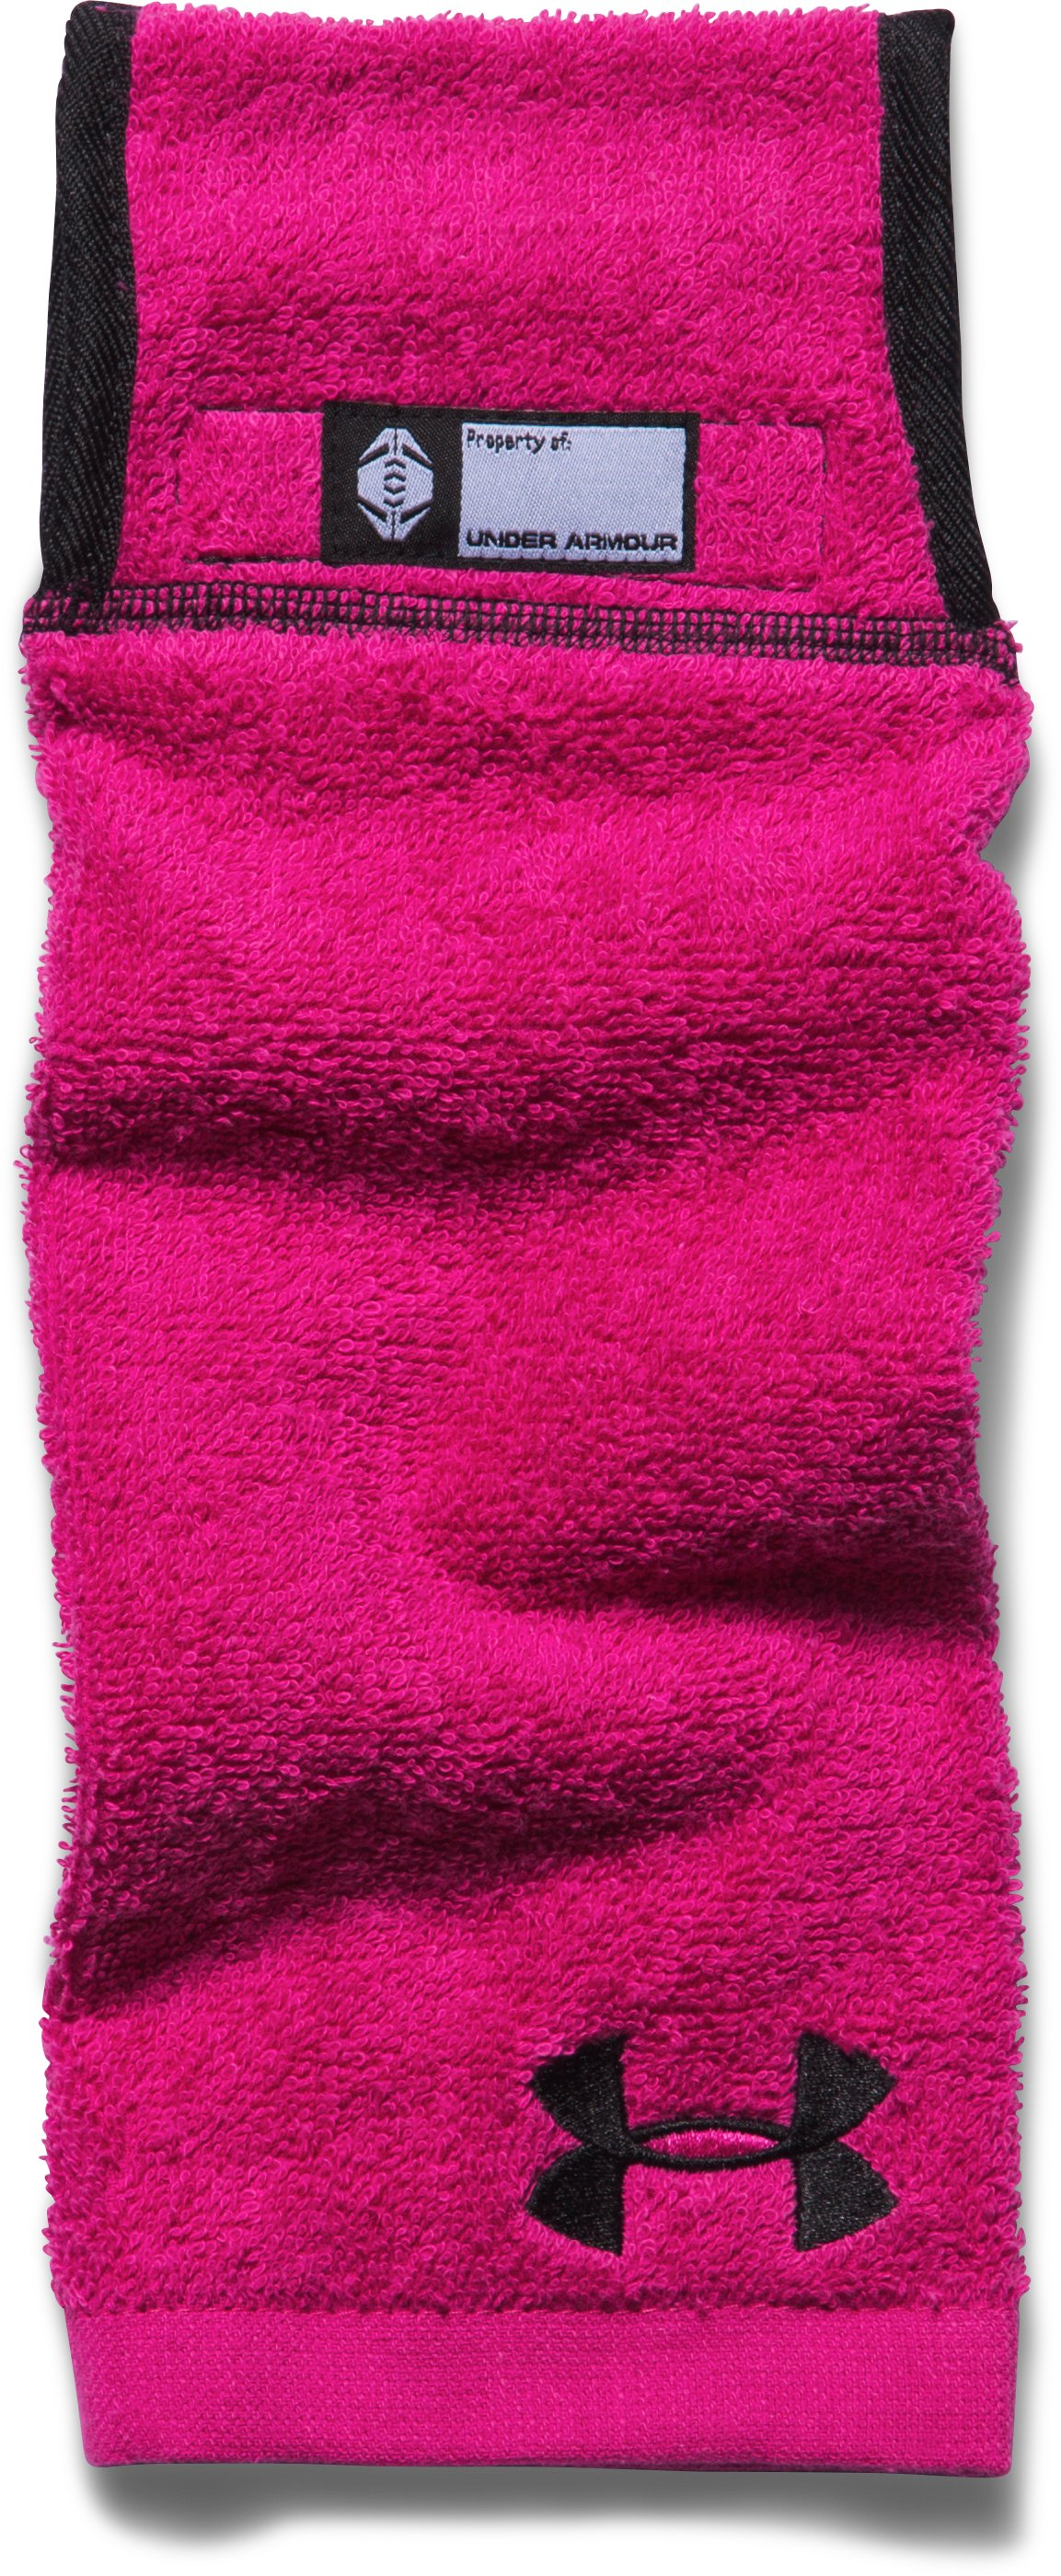 UA Undeniable Player Towel, Tropic Pink